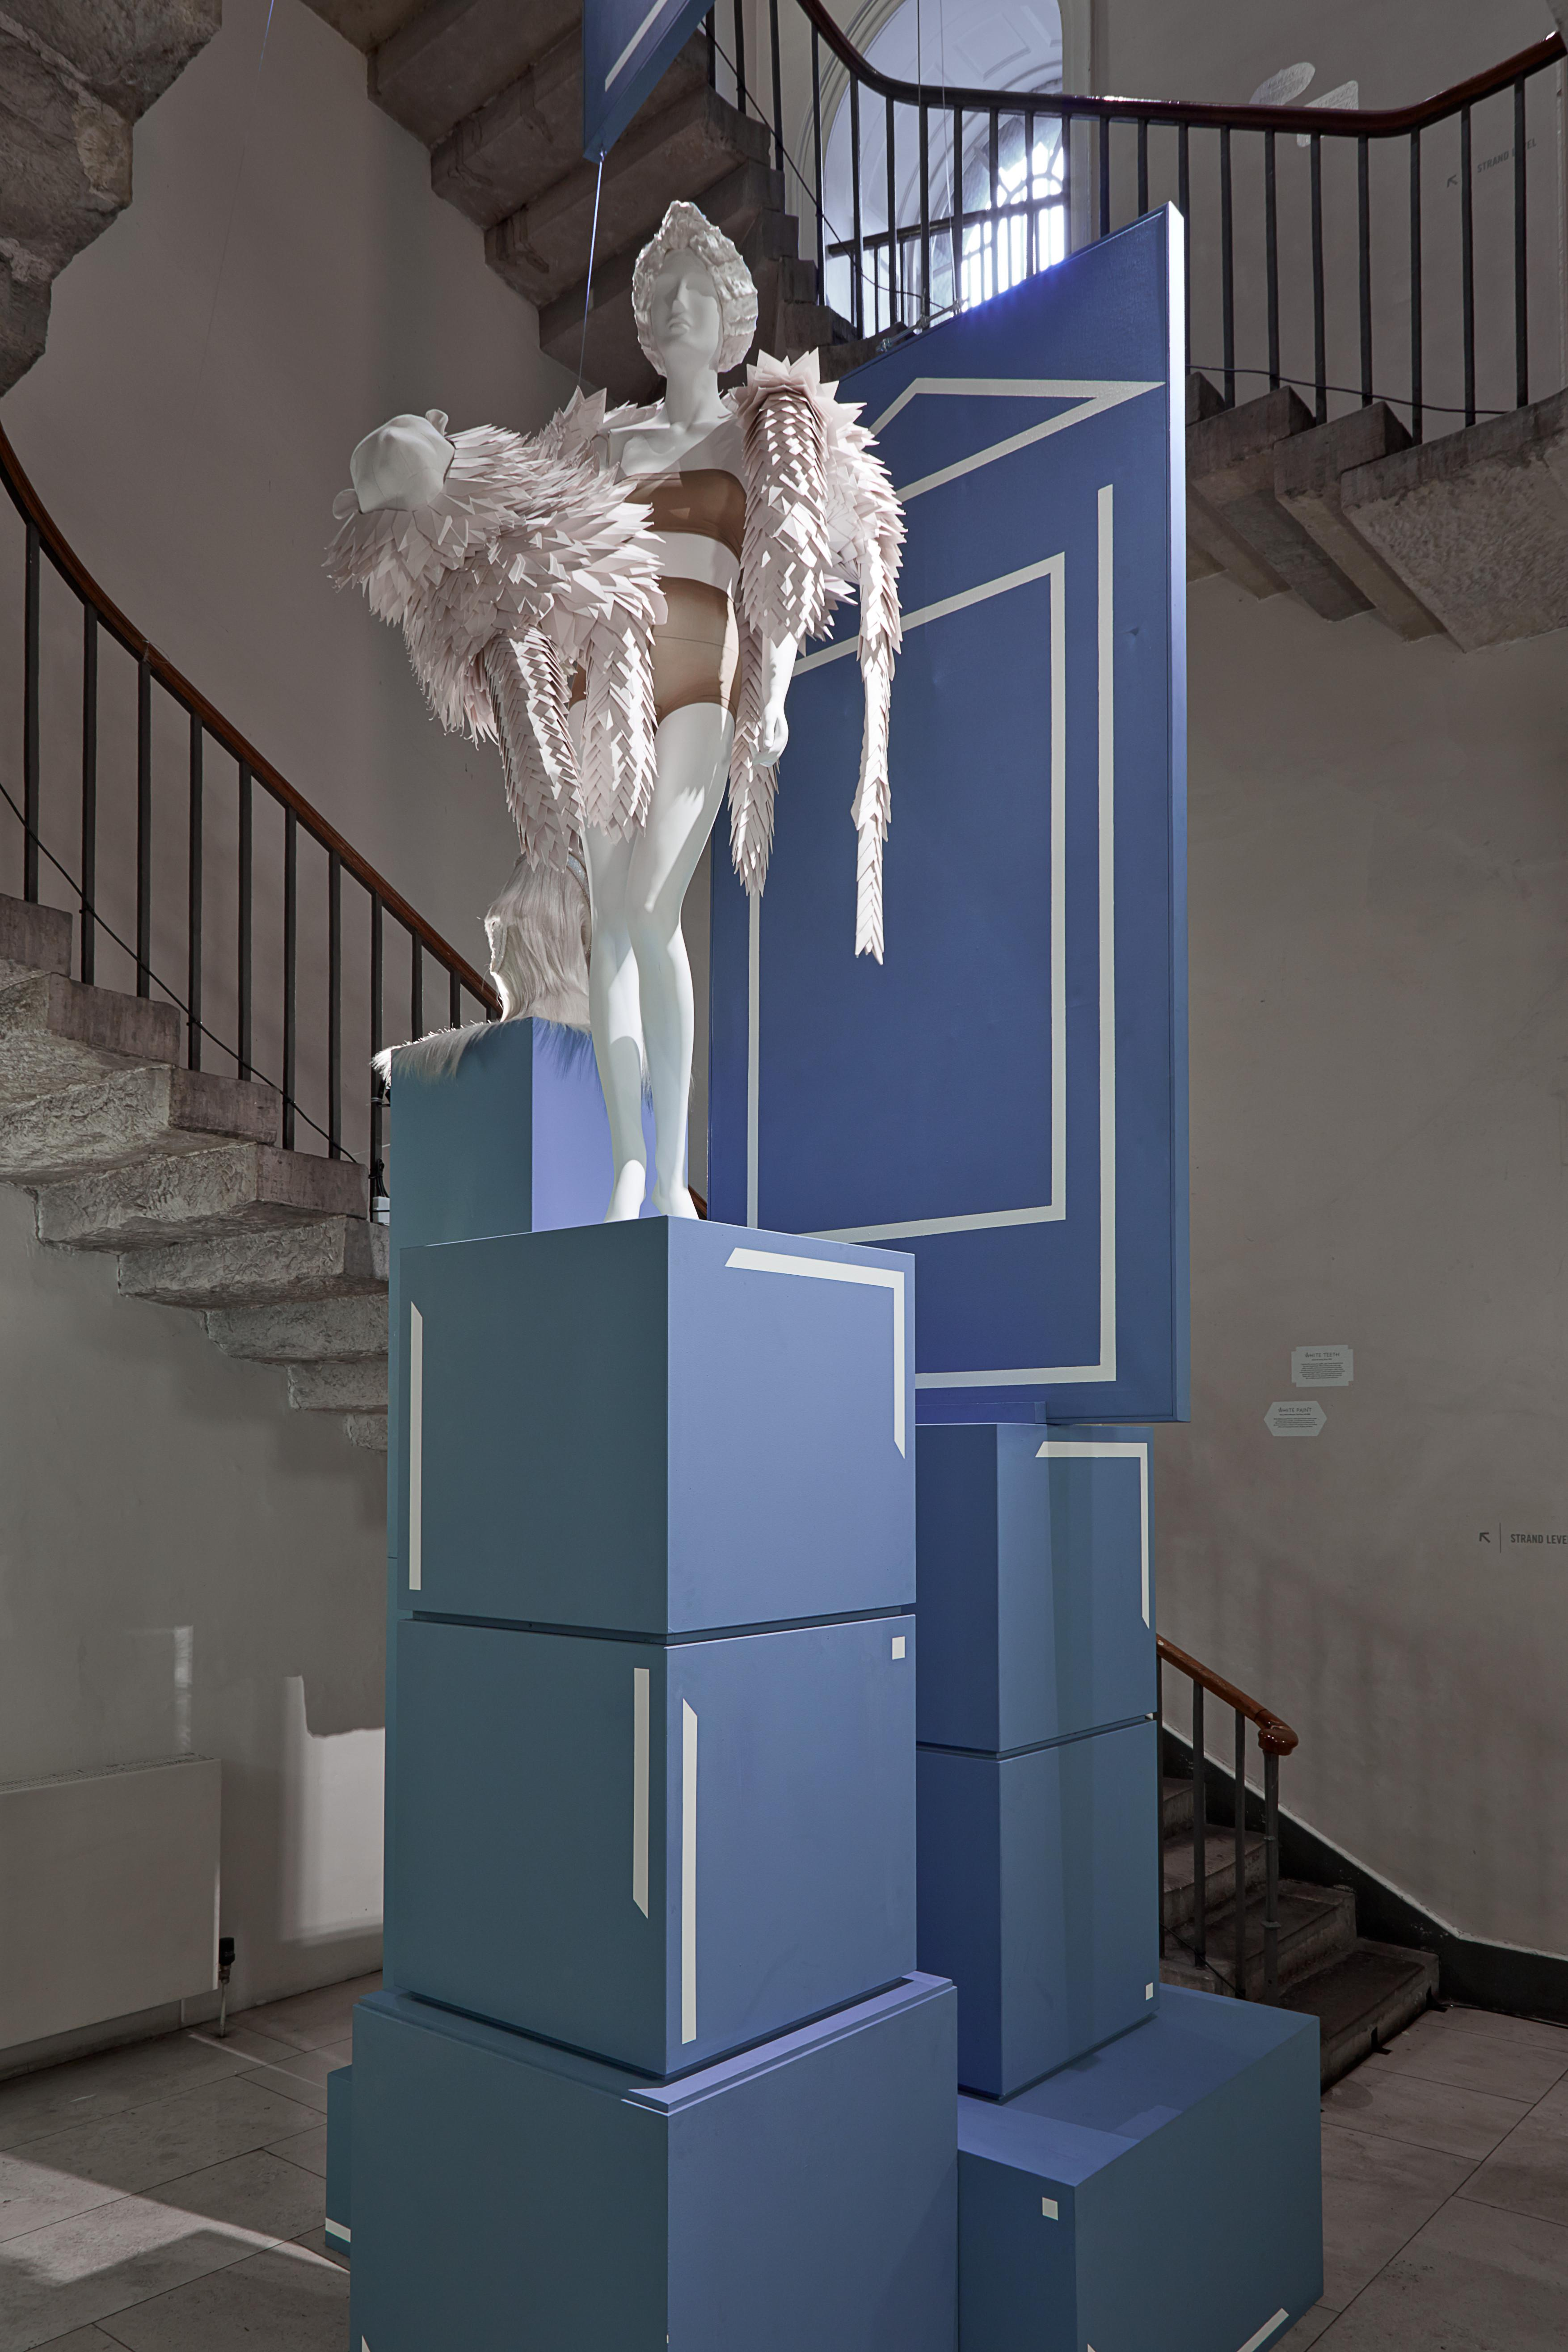 exposition-fashioning-winter-somerset-house-londres-hiver-2014-2015